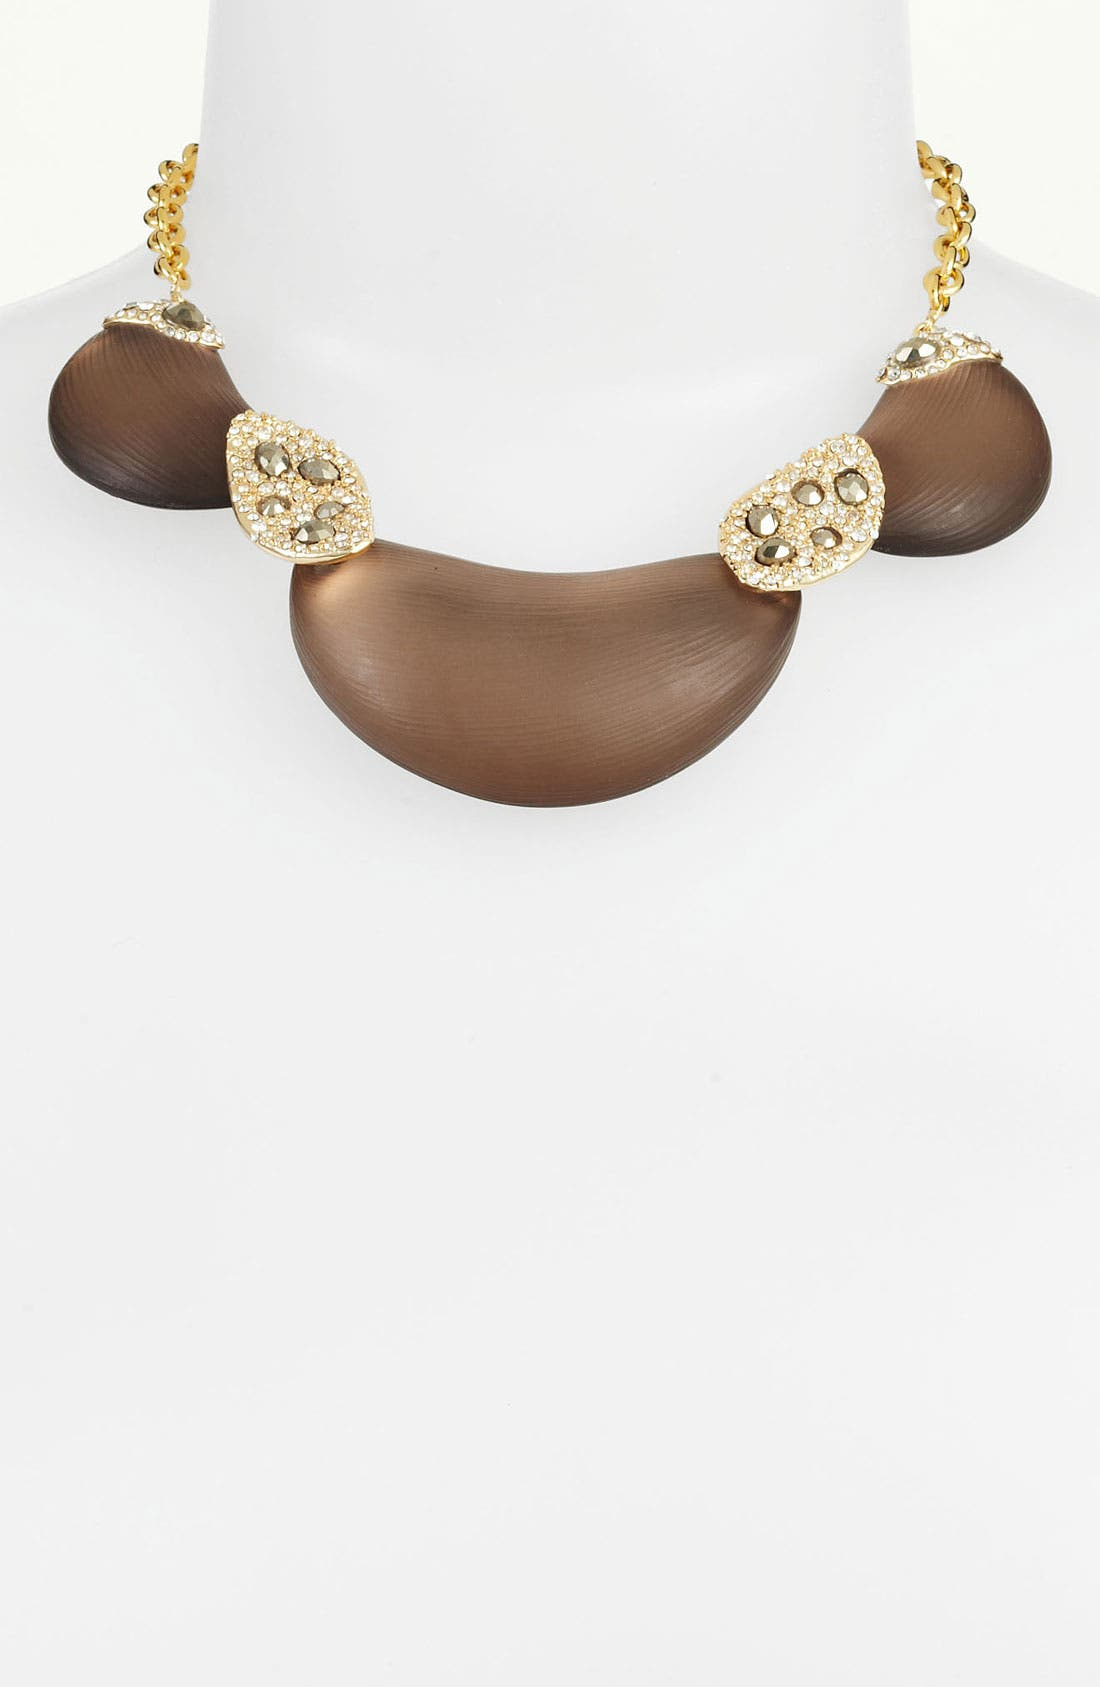 Alternate Image 1 Selected - Alexis Bittar 'Modular' Encrusted Bib Necklace